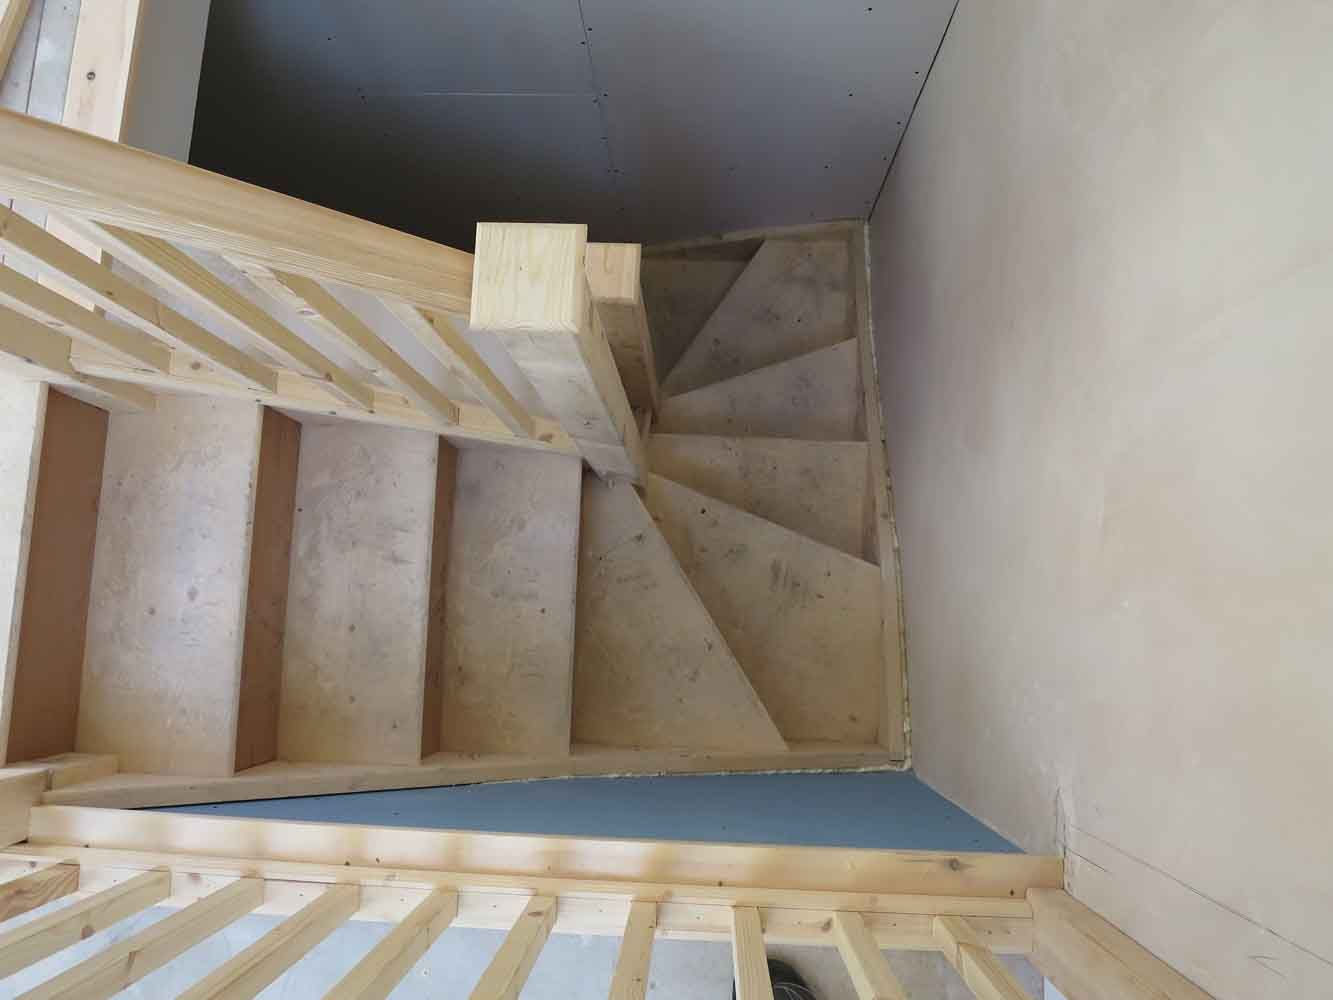 Double Winder 3x Kite Box Staircase Staircases Will Have